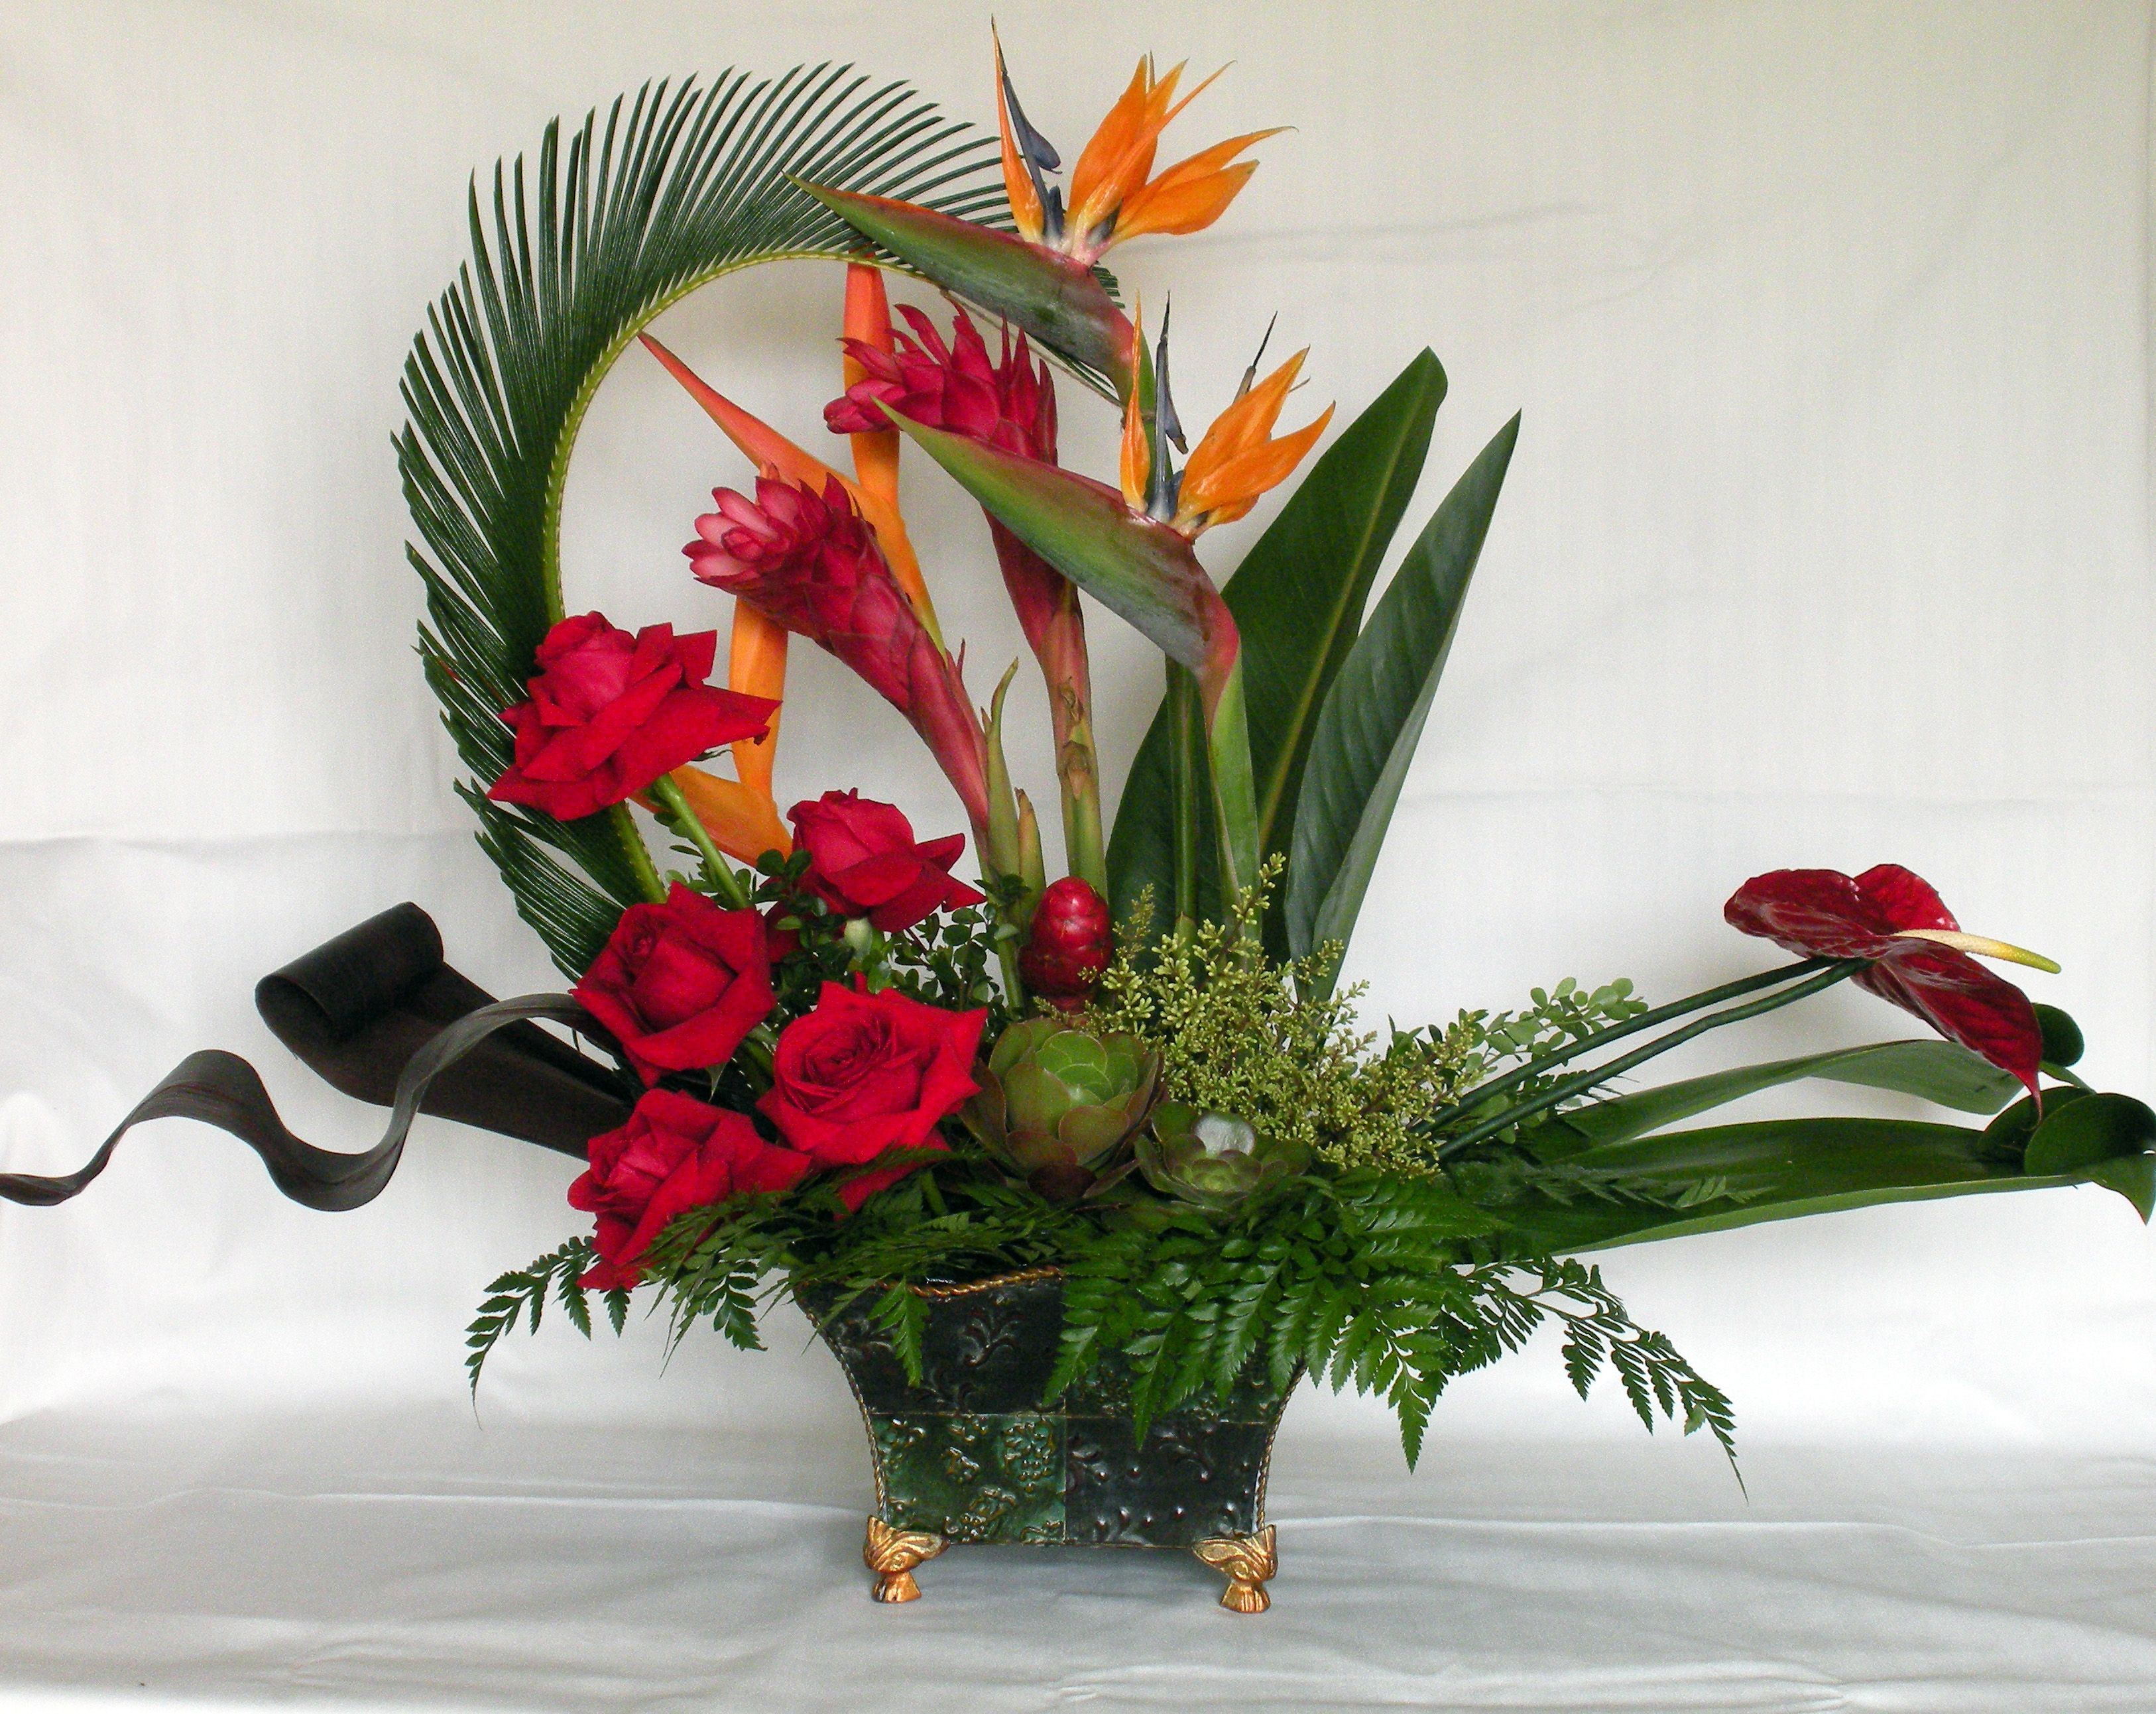 Beautiful tropical floral arrangement got it for my mom